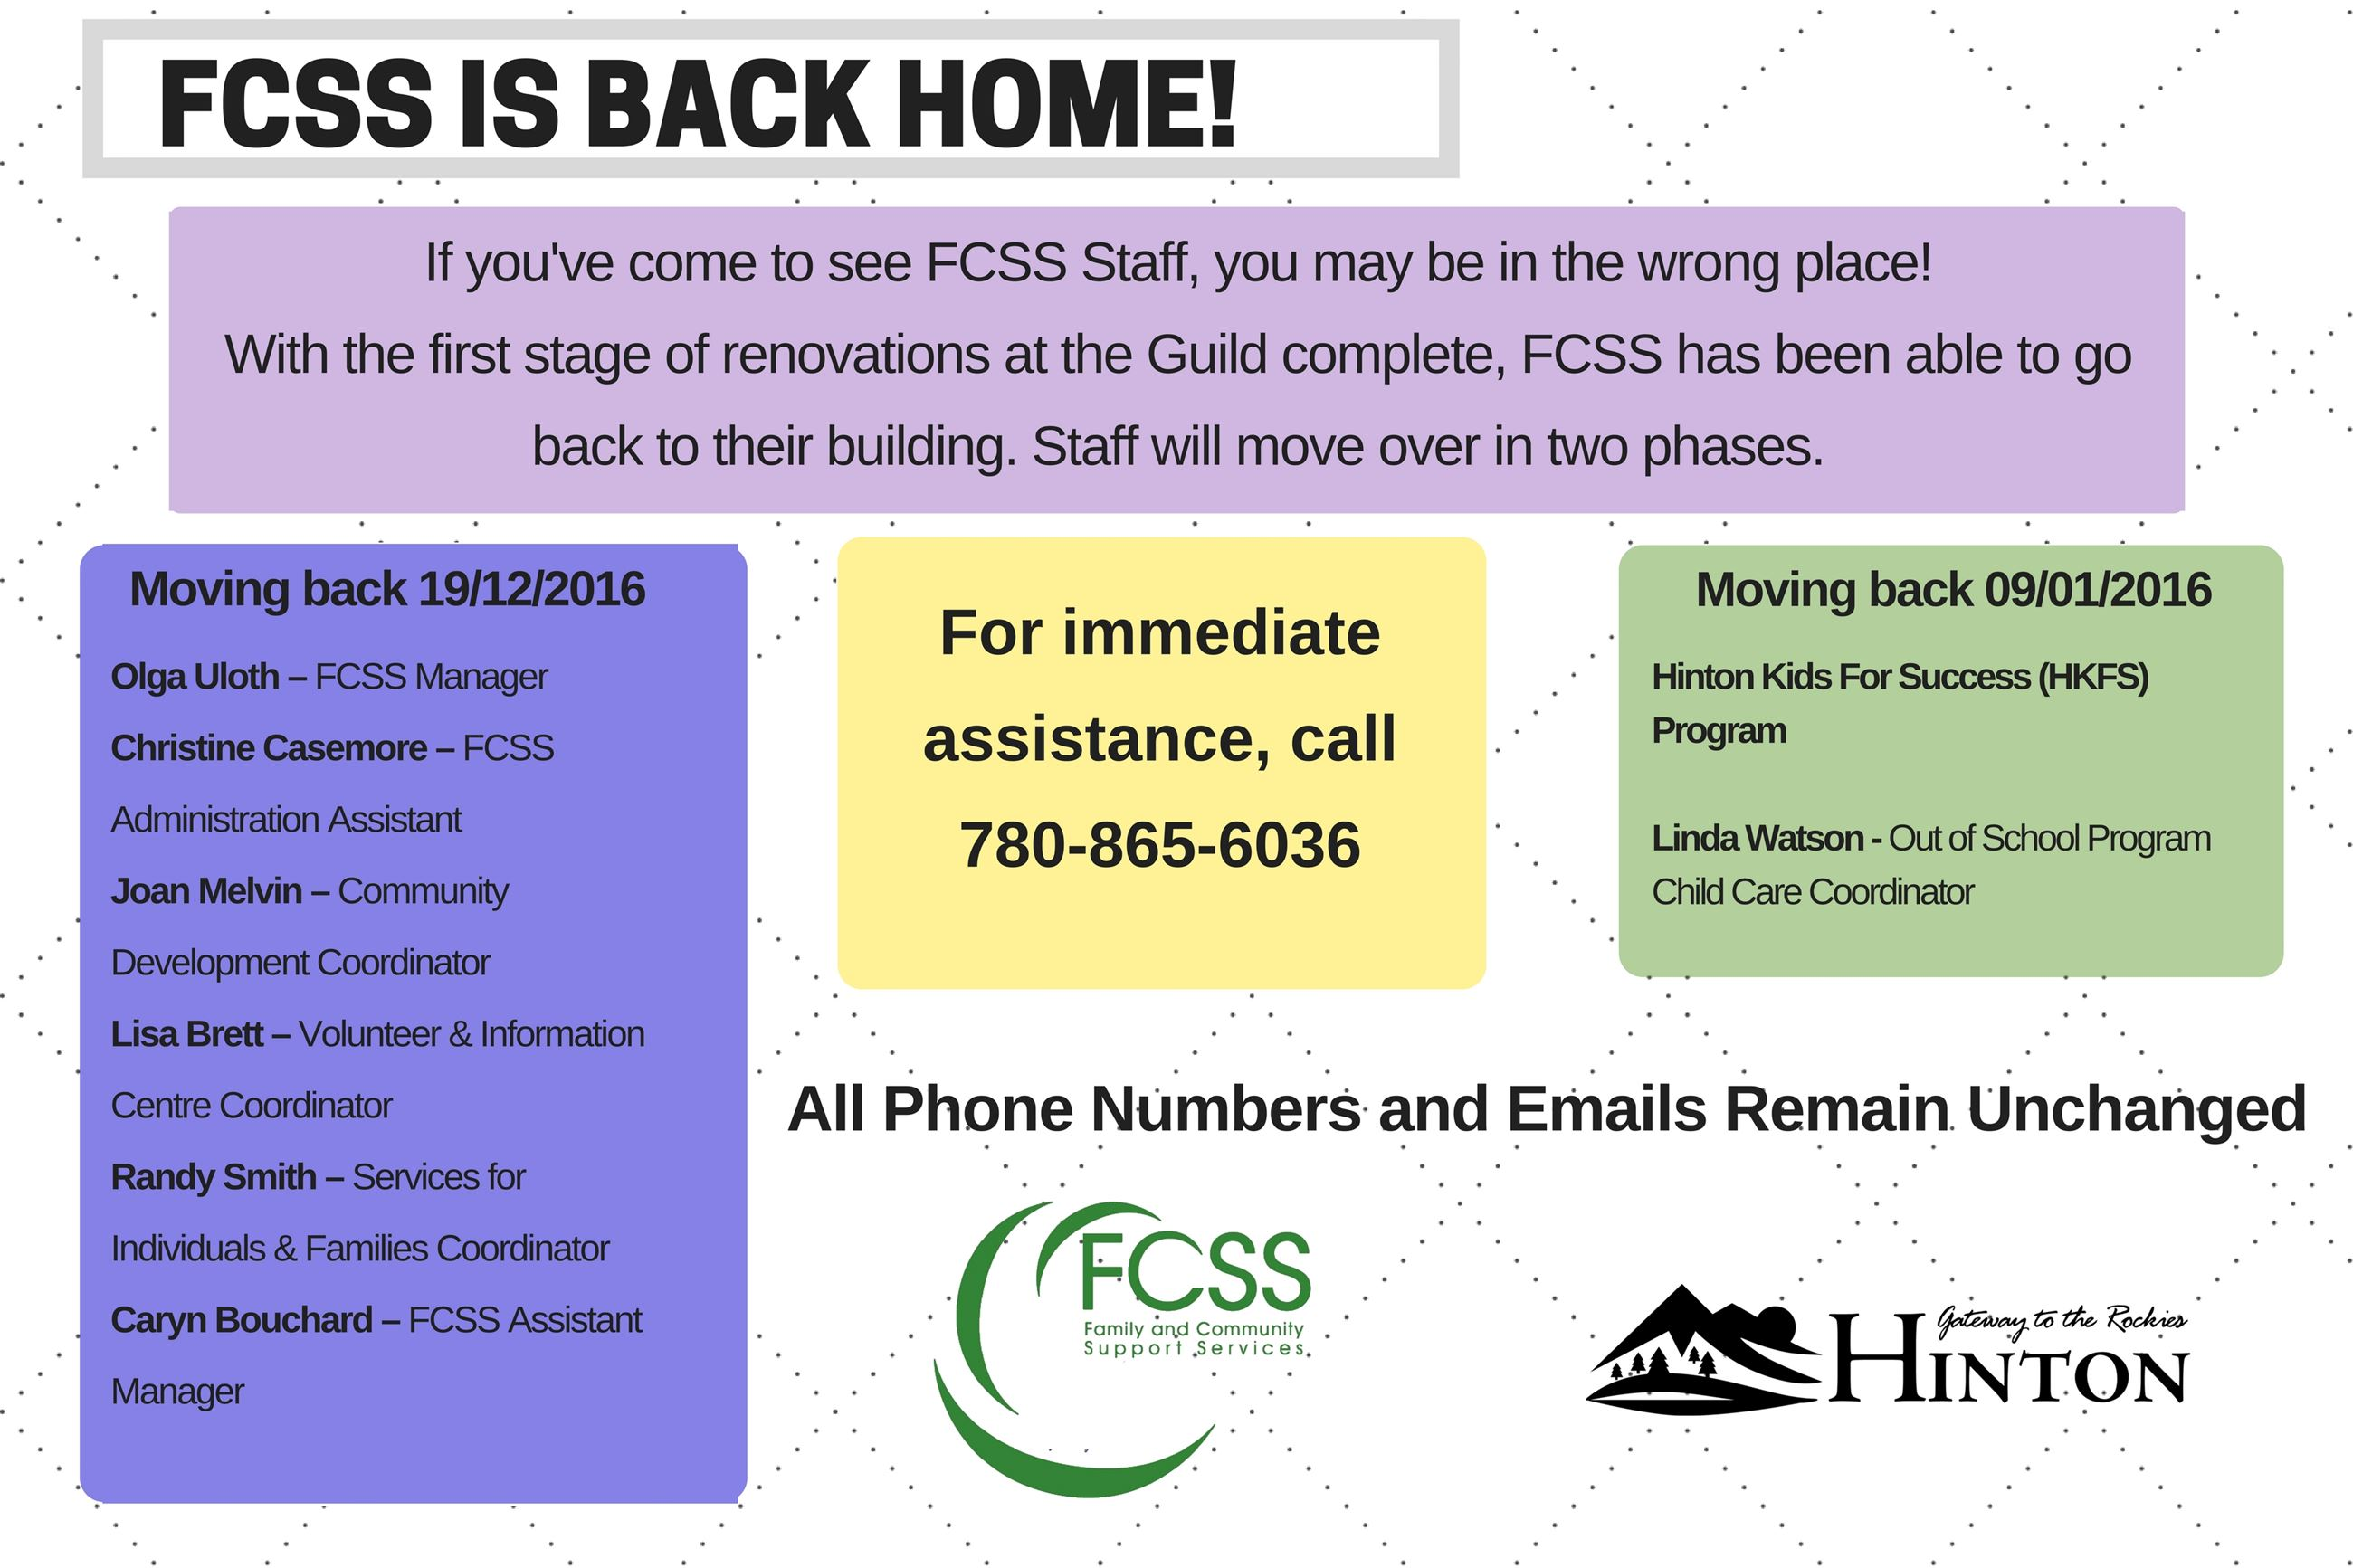 FCSS is home sign